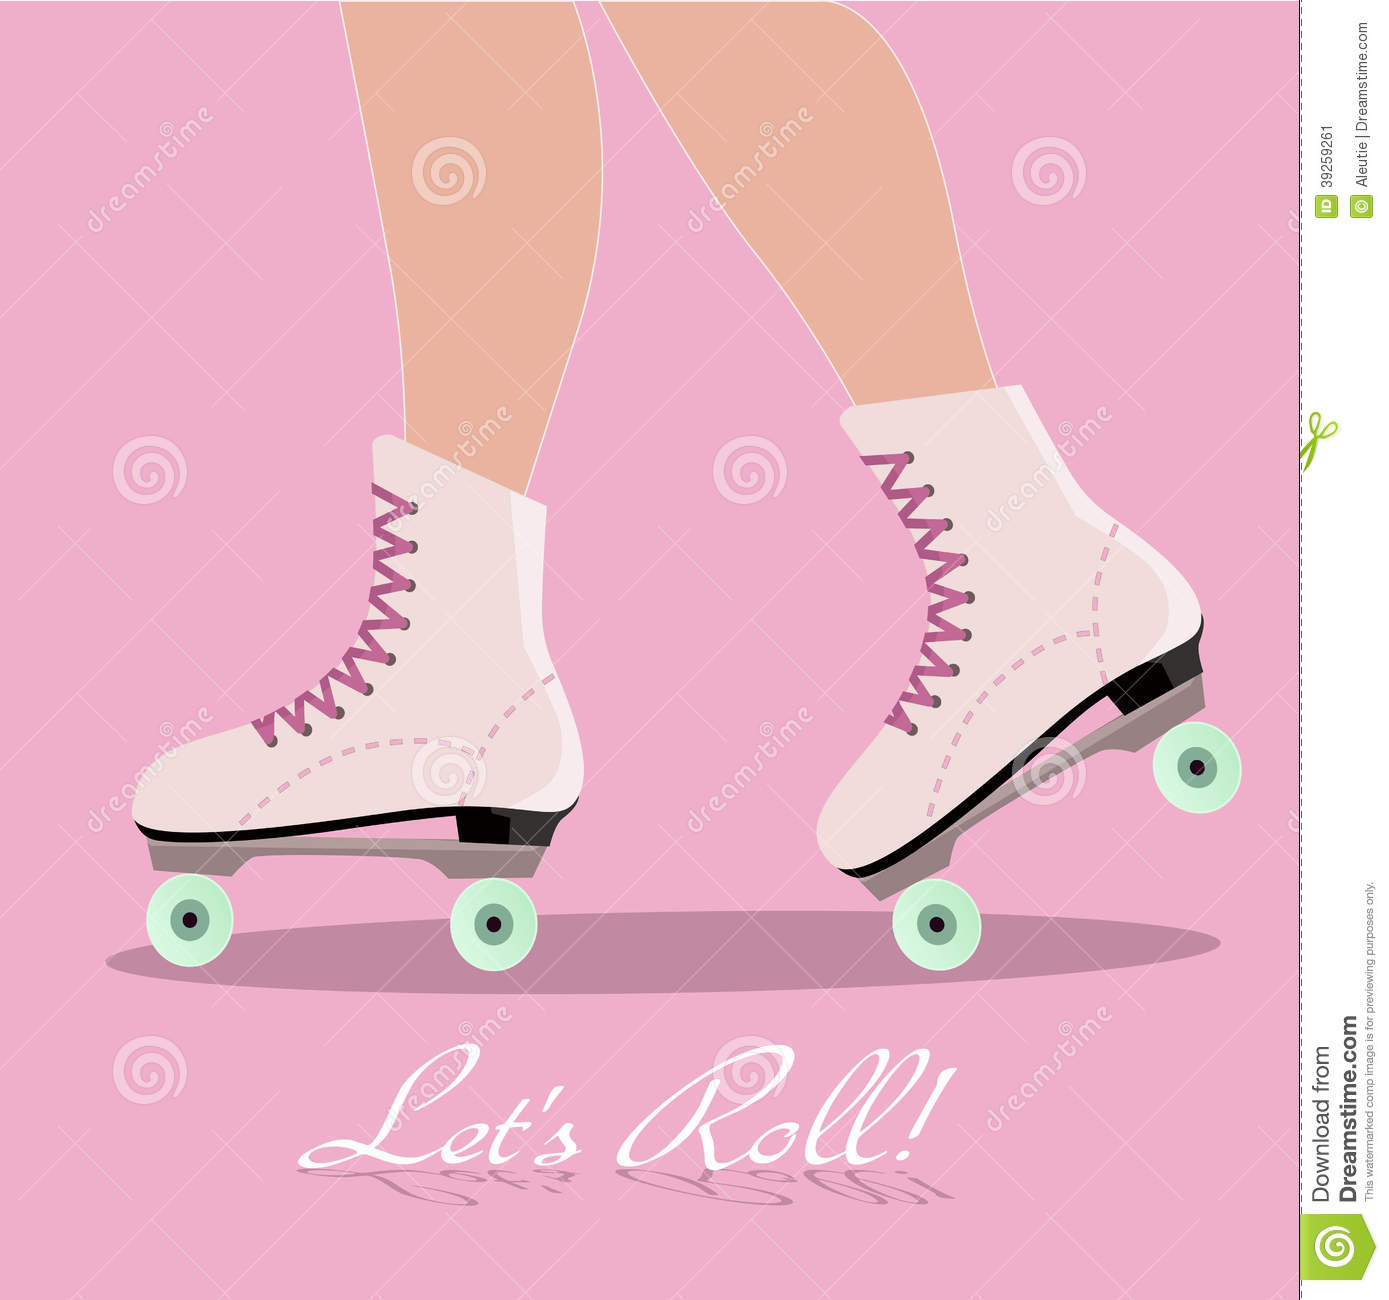 Roller Skating Party Invitation is luxury invitations design